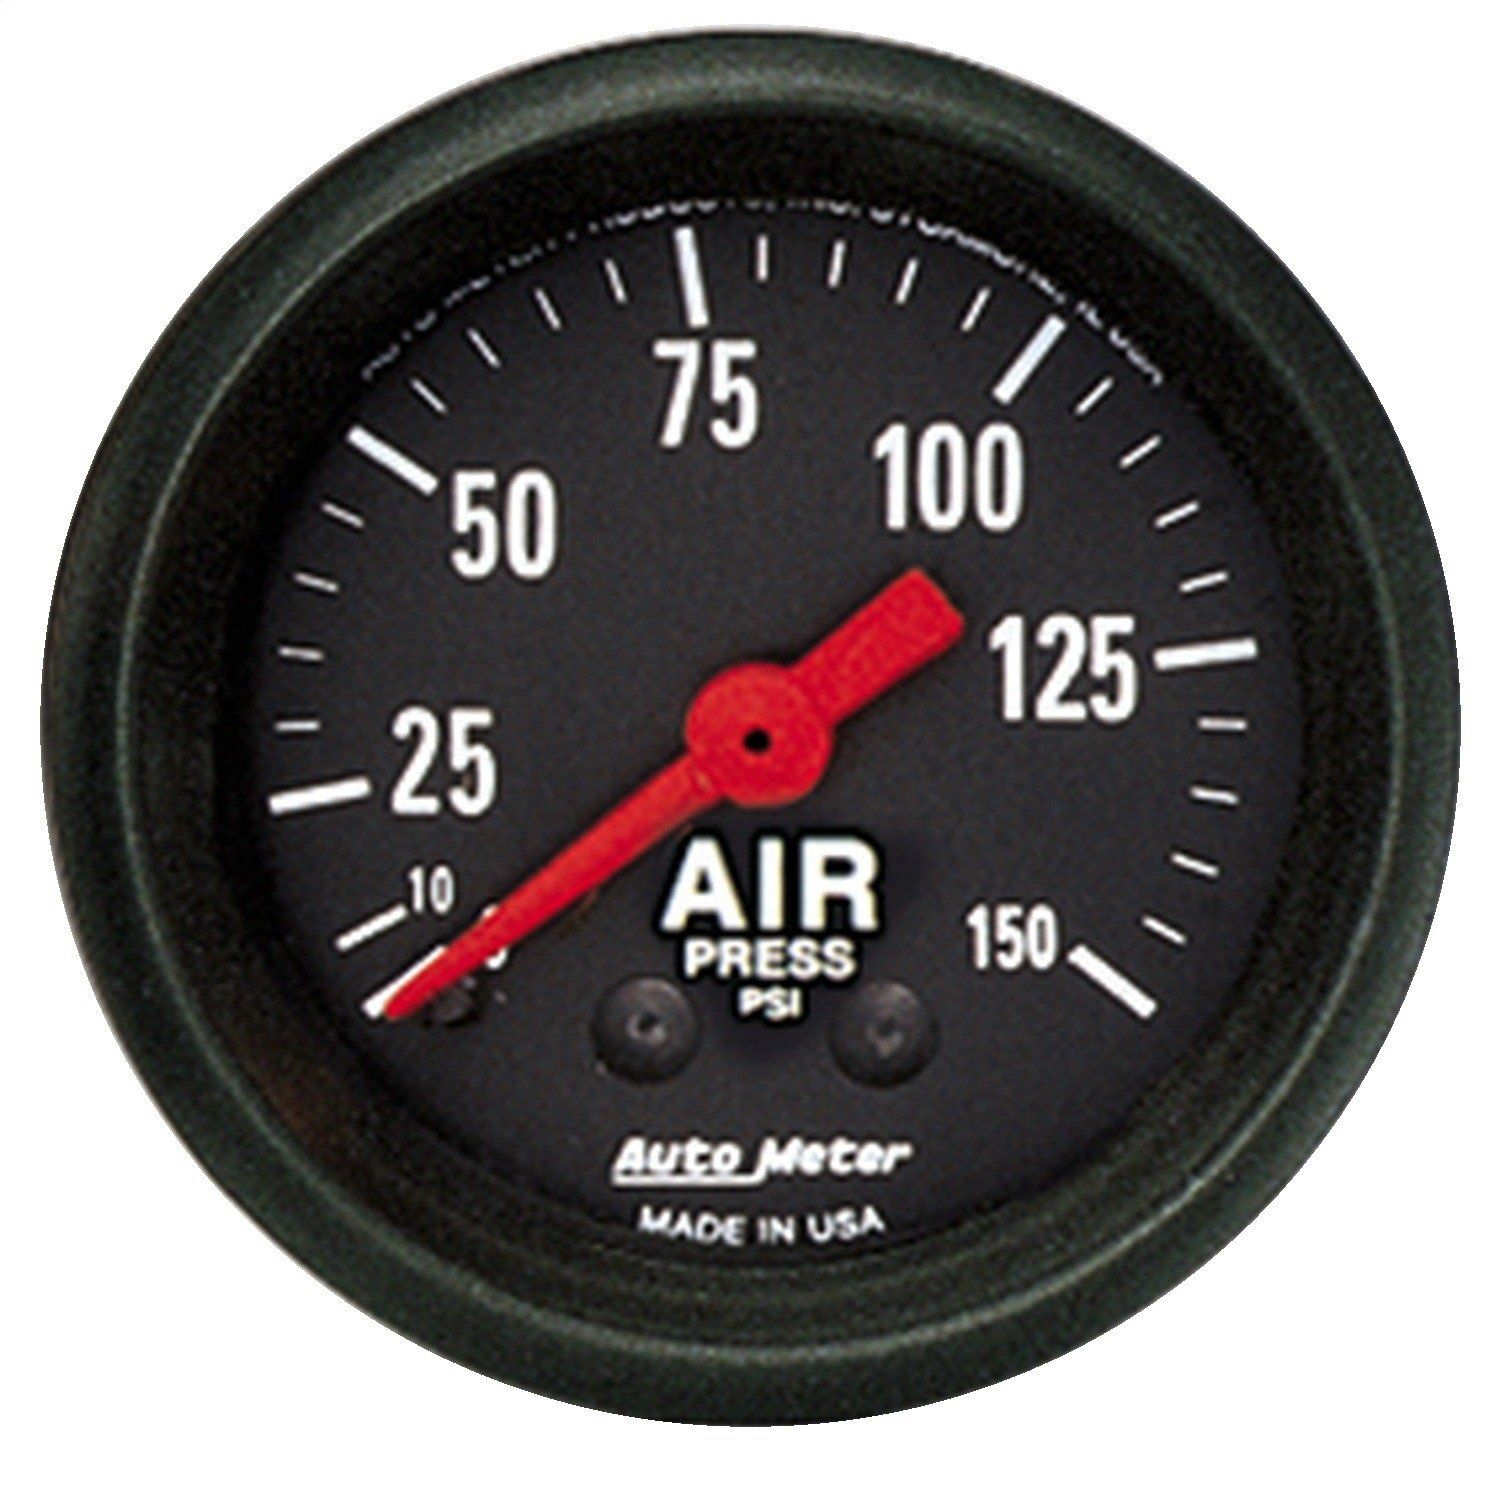 auto meter 2620 zseries mechanical air pressure gauge learn more air pressure gauge wiring diagram [ 1500 x 1489 Pixel ]